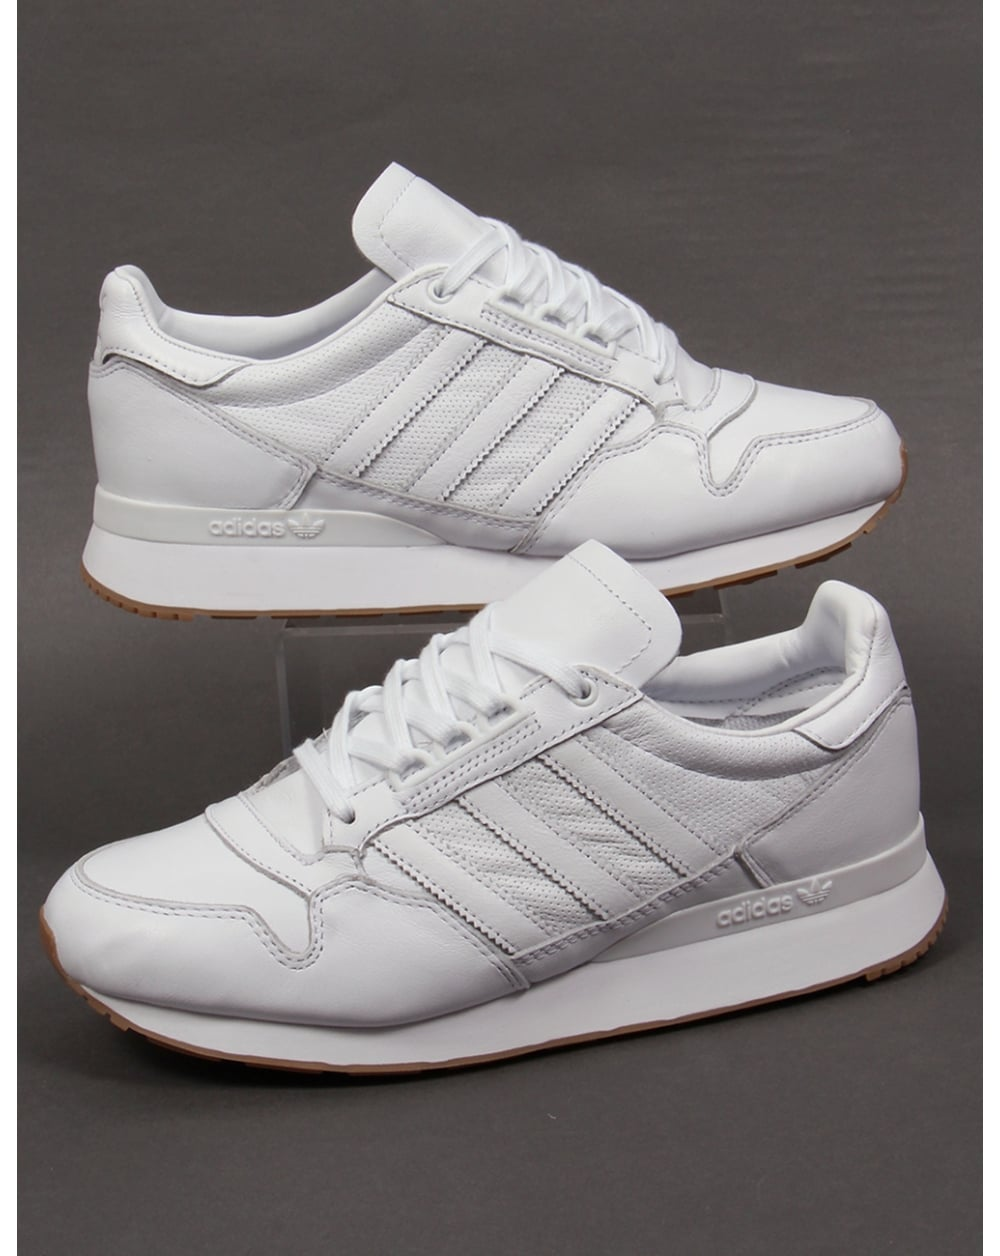 best website ed815 de7ec adidas Trainers Adidas ZX 500 OG Leather Trainers Whitewhite